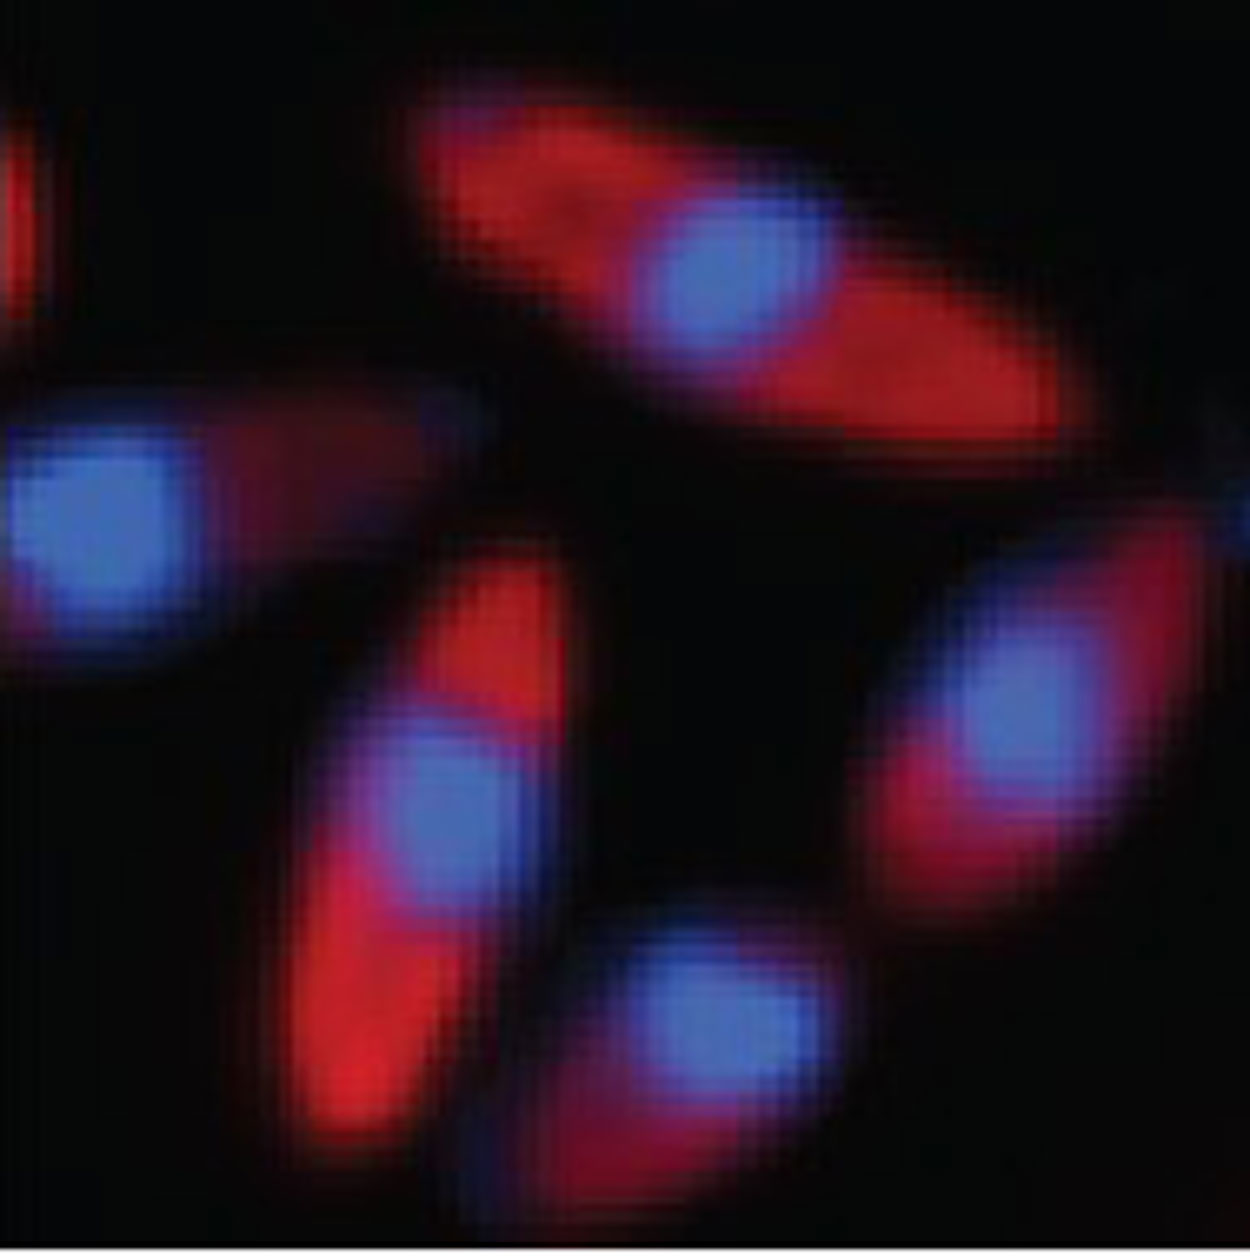 Microscopic photo of longated red-colored cells surrounding blue-colored cells.